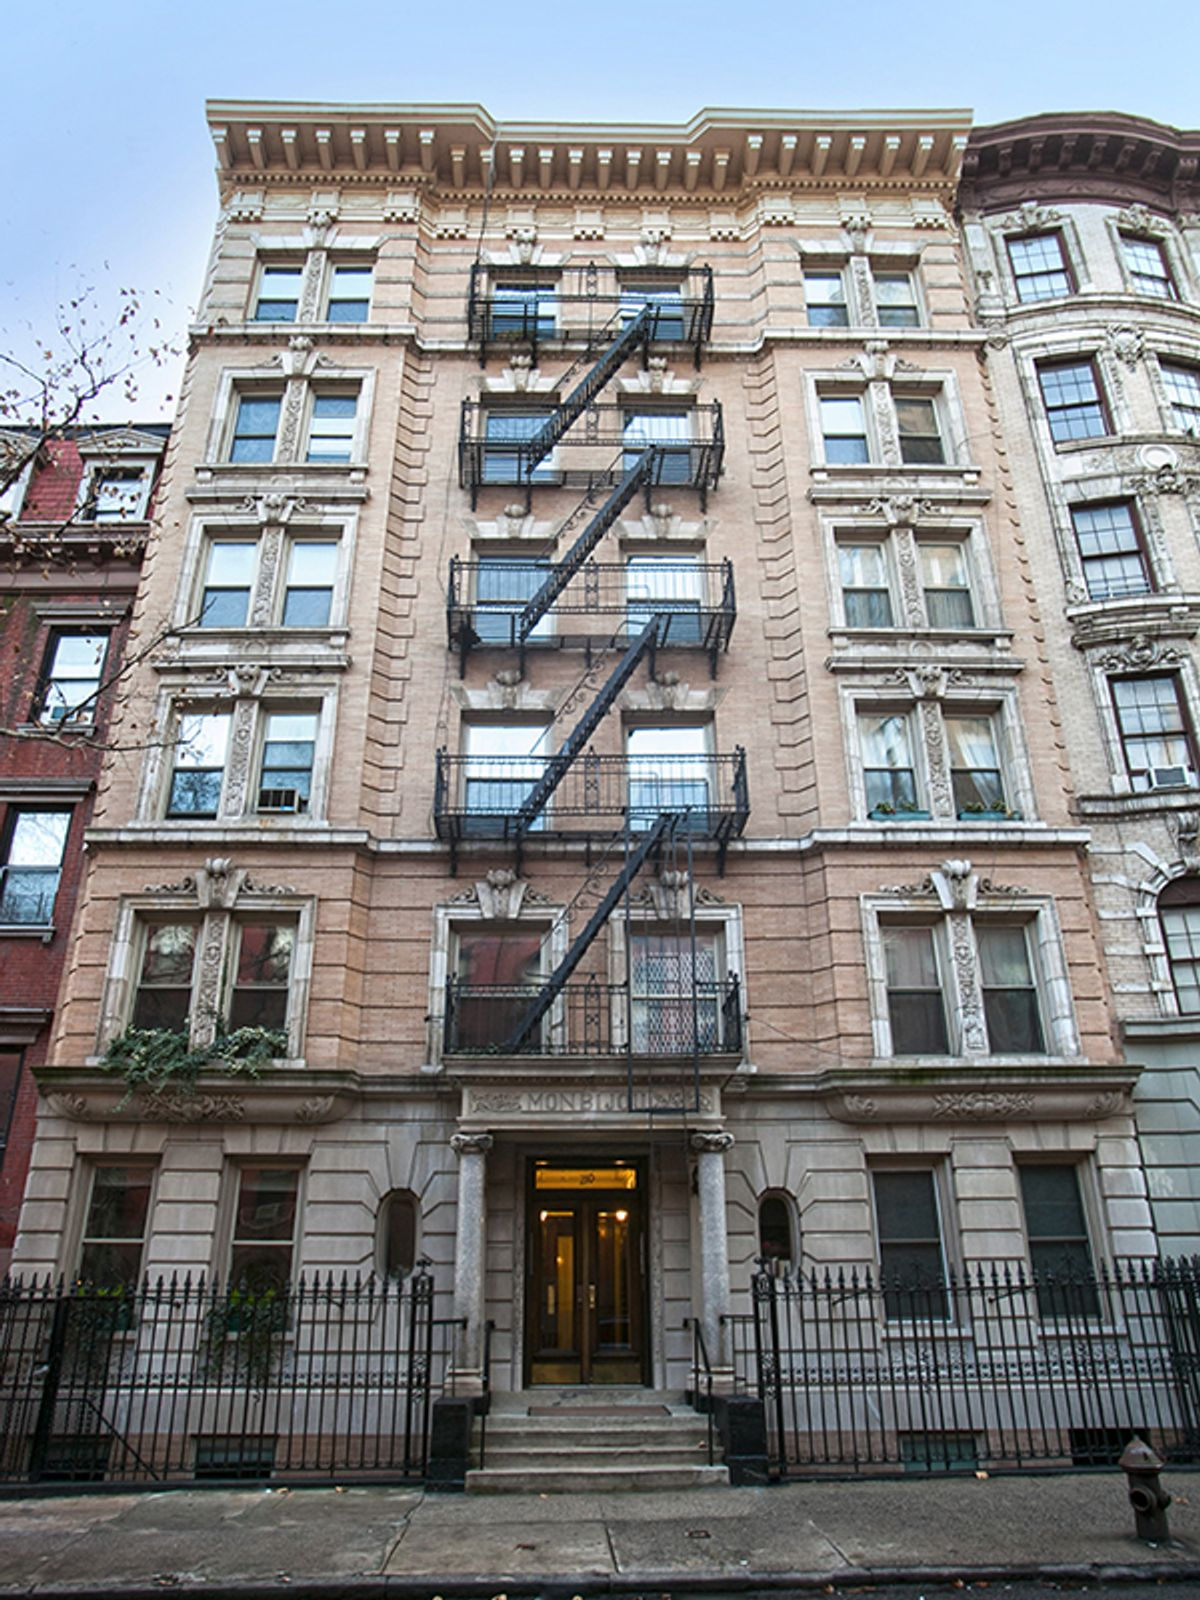 210 East 17th Street, New York NY Cooperative - New York City Real Estate